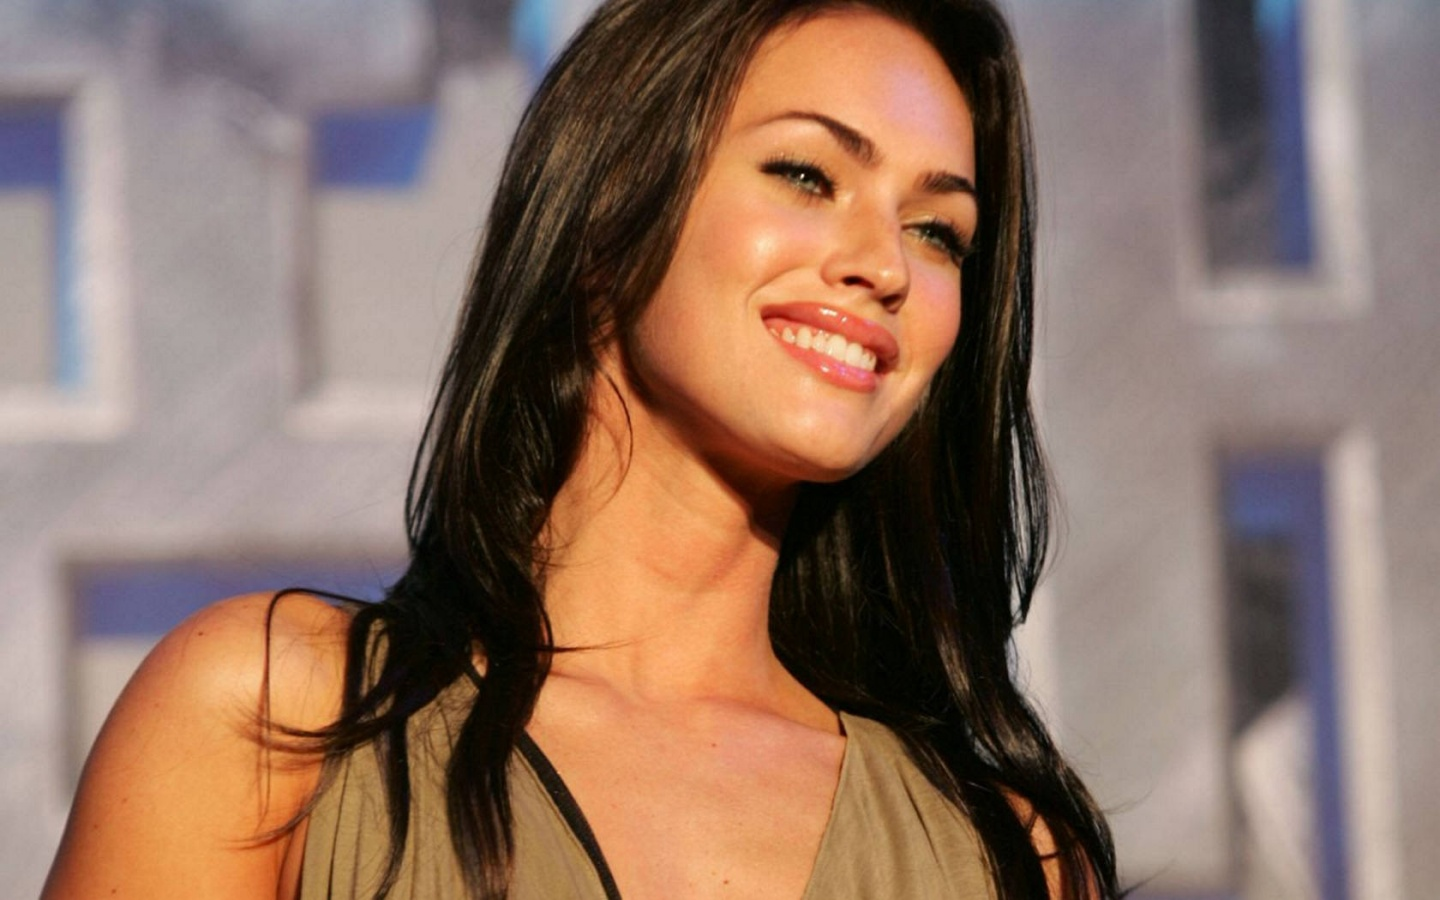 http://2.bp.blogspot.com/-2oEeX_I6Rrk/TusJ7NEK7JI/AAAAAAAADhs/-oEurDQGDoo/s1600/Girl+Hairstyle%252C+Photo+Gallery%252C+Megan+Fox+Hairstyle%252C+Celebrity+Megan+Fox+Hairstyle%252C+Megan+Fox+Hairstyle+Photo%252C+Latest+Megan+Fox+Hairstyle%252C+Megan+Fox+Hairstyle+Cutting+%252870%2529.jpg